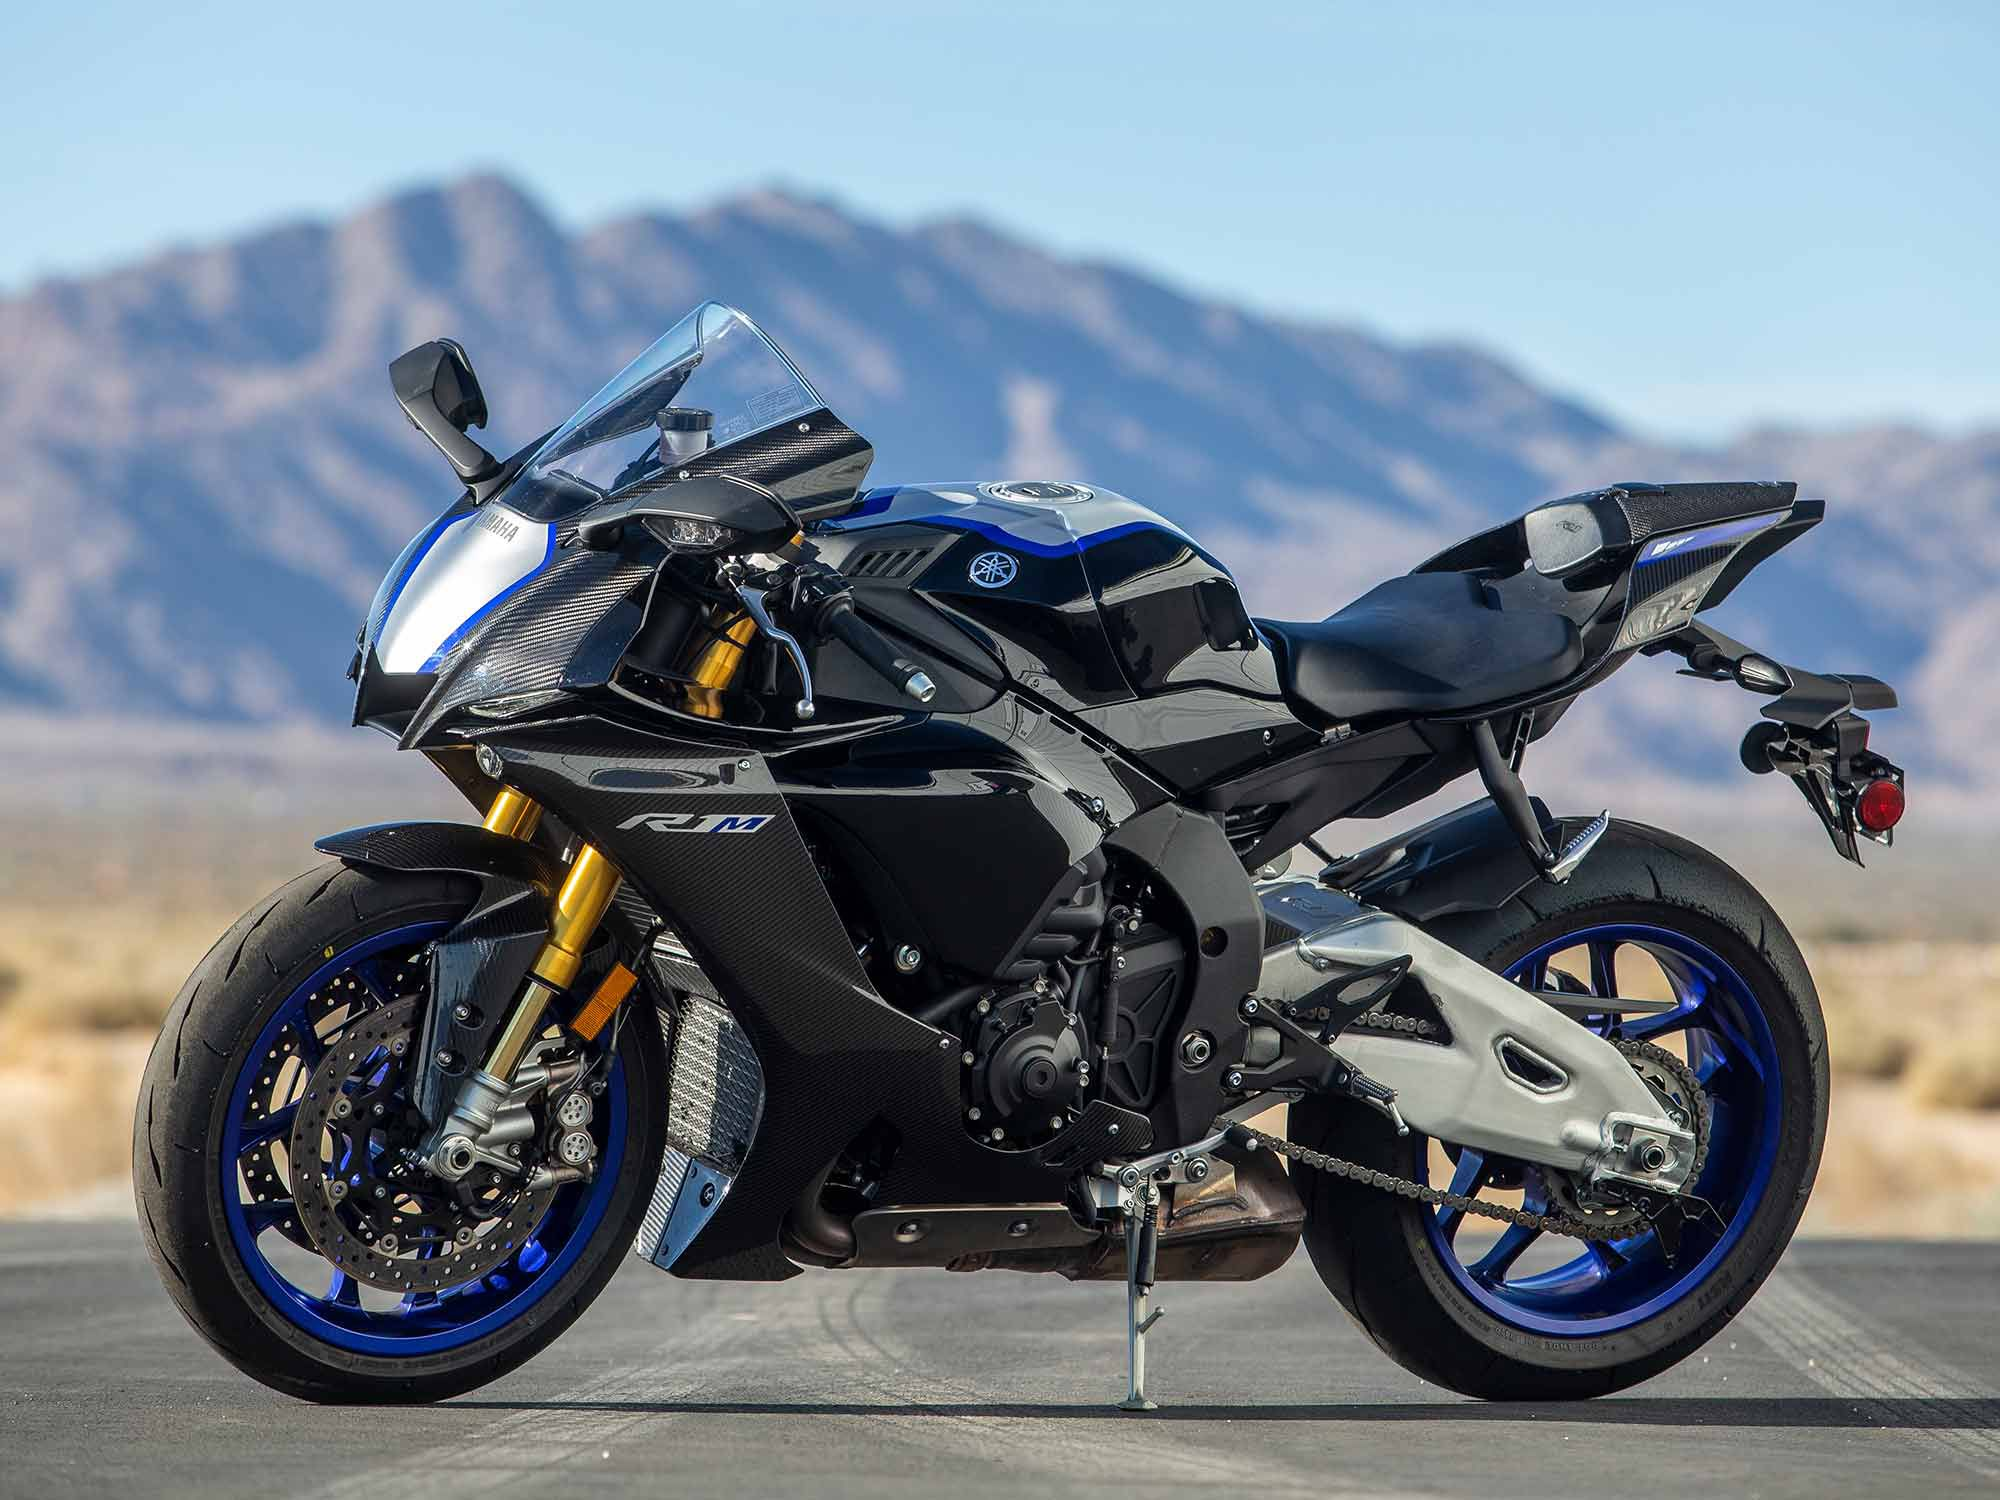 Yamaha's 2021 YZF-R1M ($26,099) continues to be pure excellence. We love the function and versatility of its Ohlins semi-active suspension.